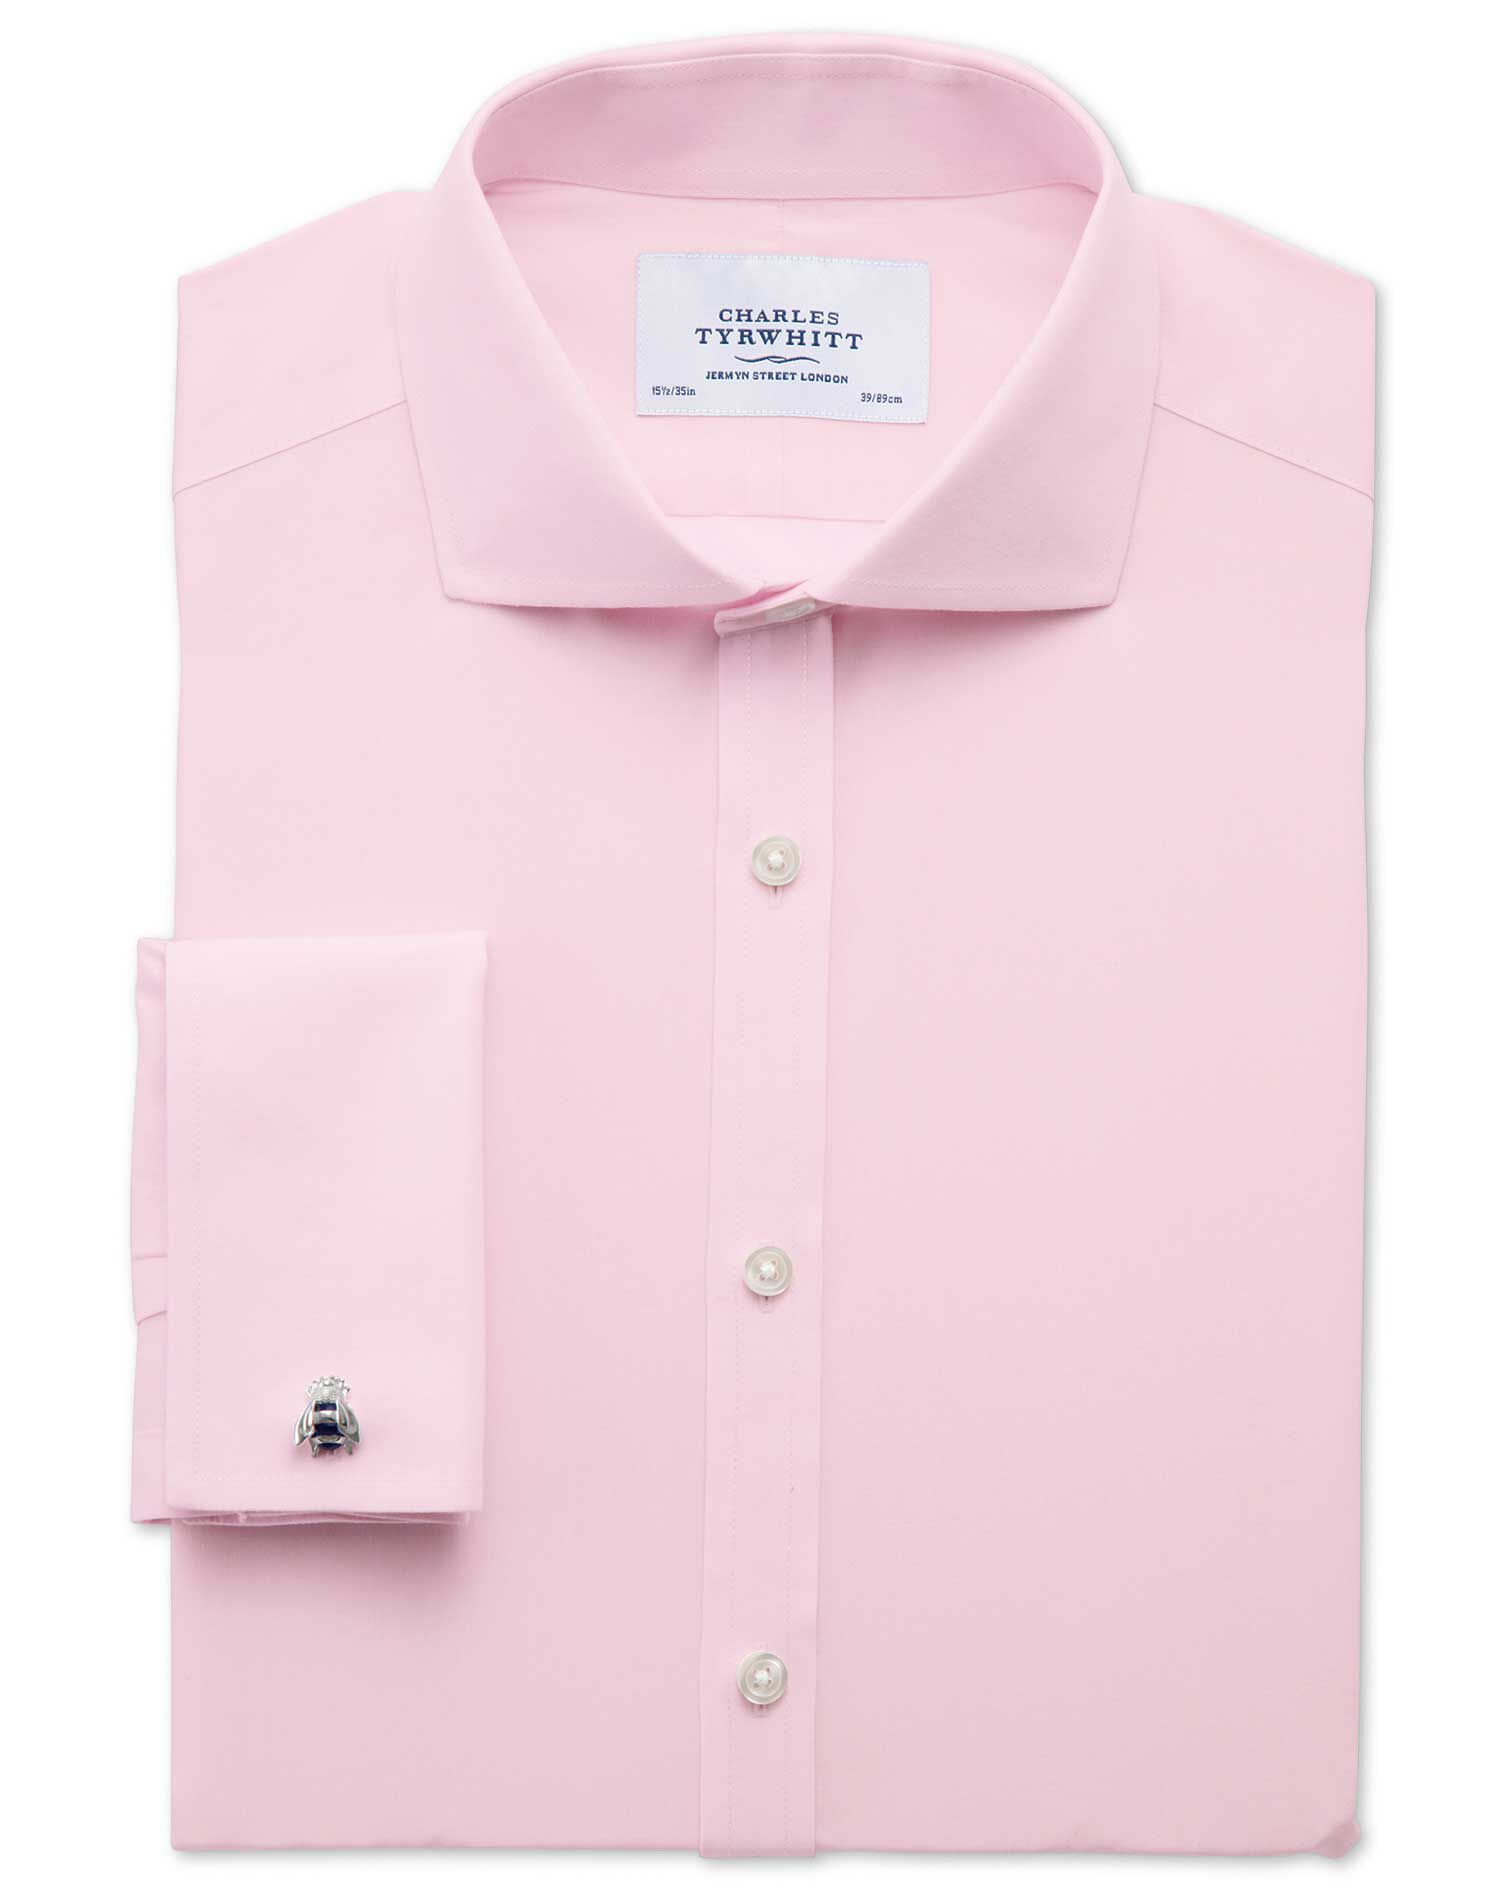 Extra Slim Fit Cutaway Collar Non-Iron Poplin Light Pink Cotton Formal Shirt Double Cuff Size 15.5/3